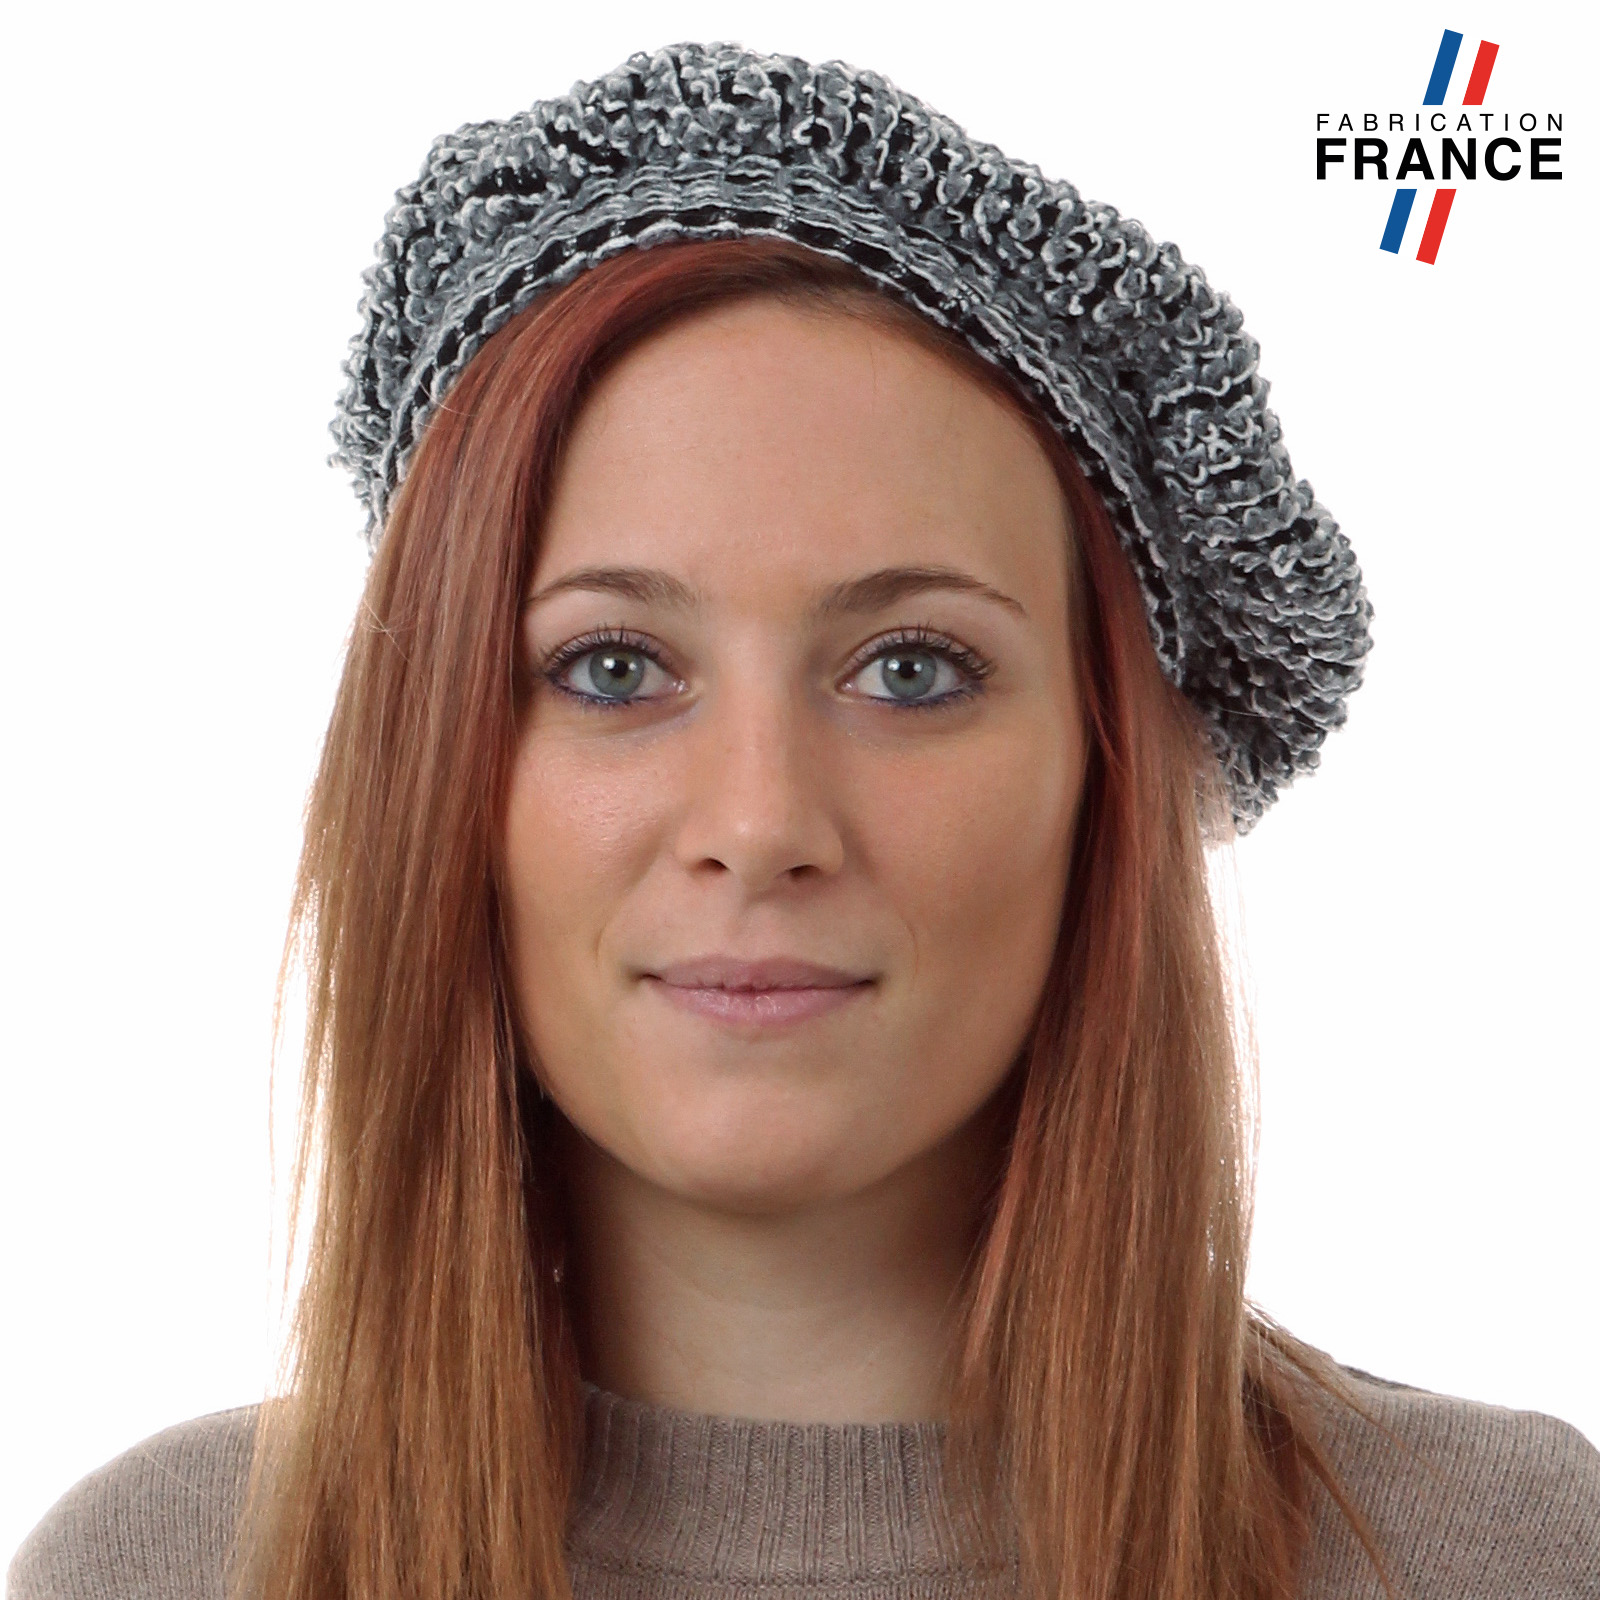 CP-00685-V16-beret-femme-gris-fabrication-francaise